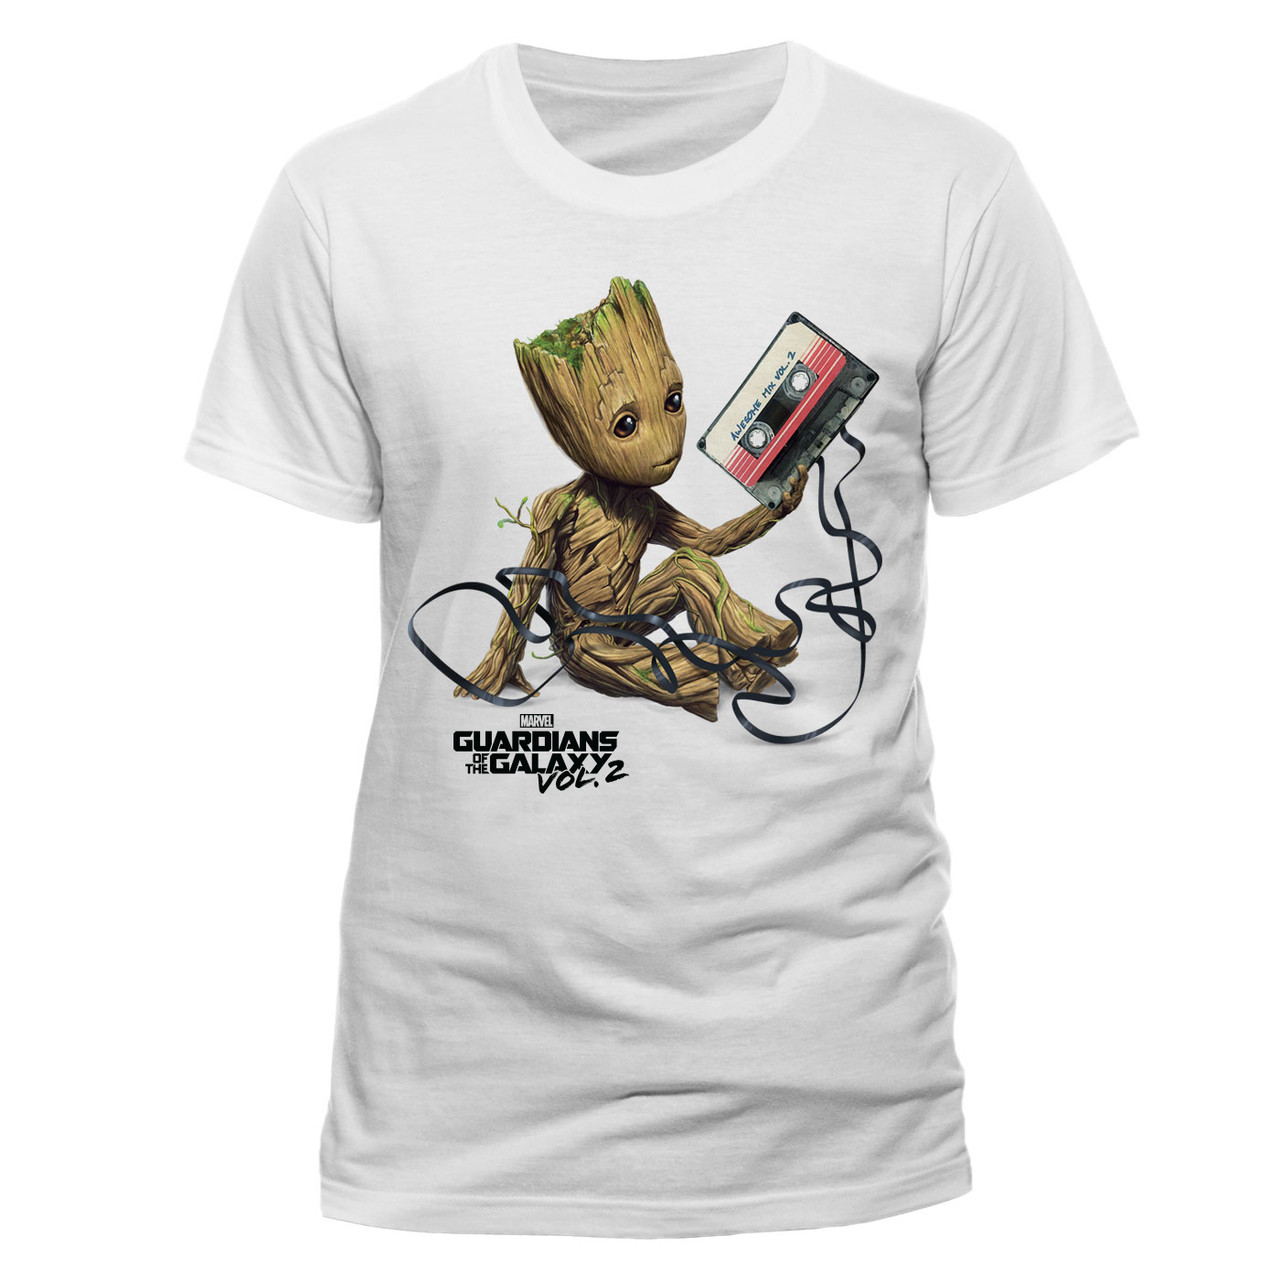 5dabb273c Baby Groot with Tape Guardians Of The Galaxy Vol. 2 Official Unisex White T- Shirt. Buy Guardians Of The Galaxy Vol. 2 T-shirts Now at Starstills.com